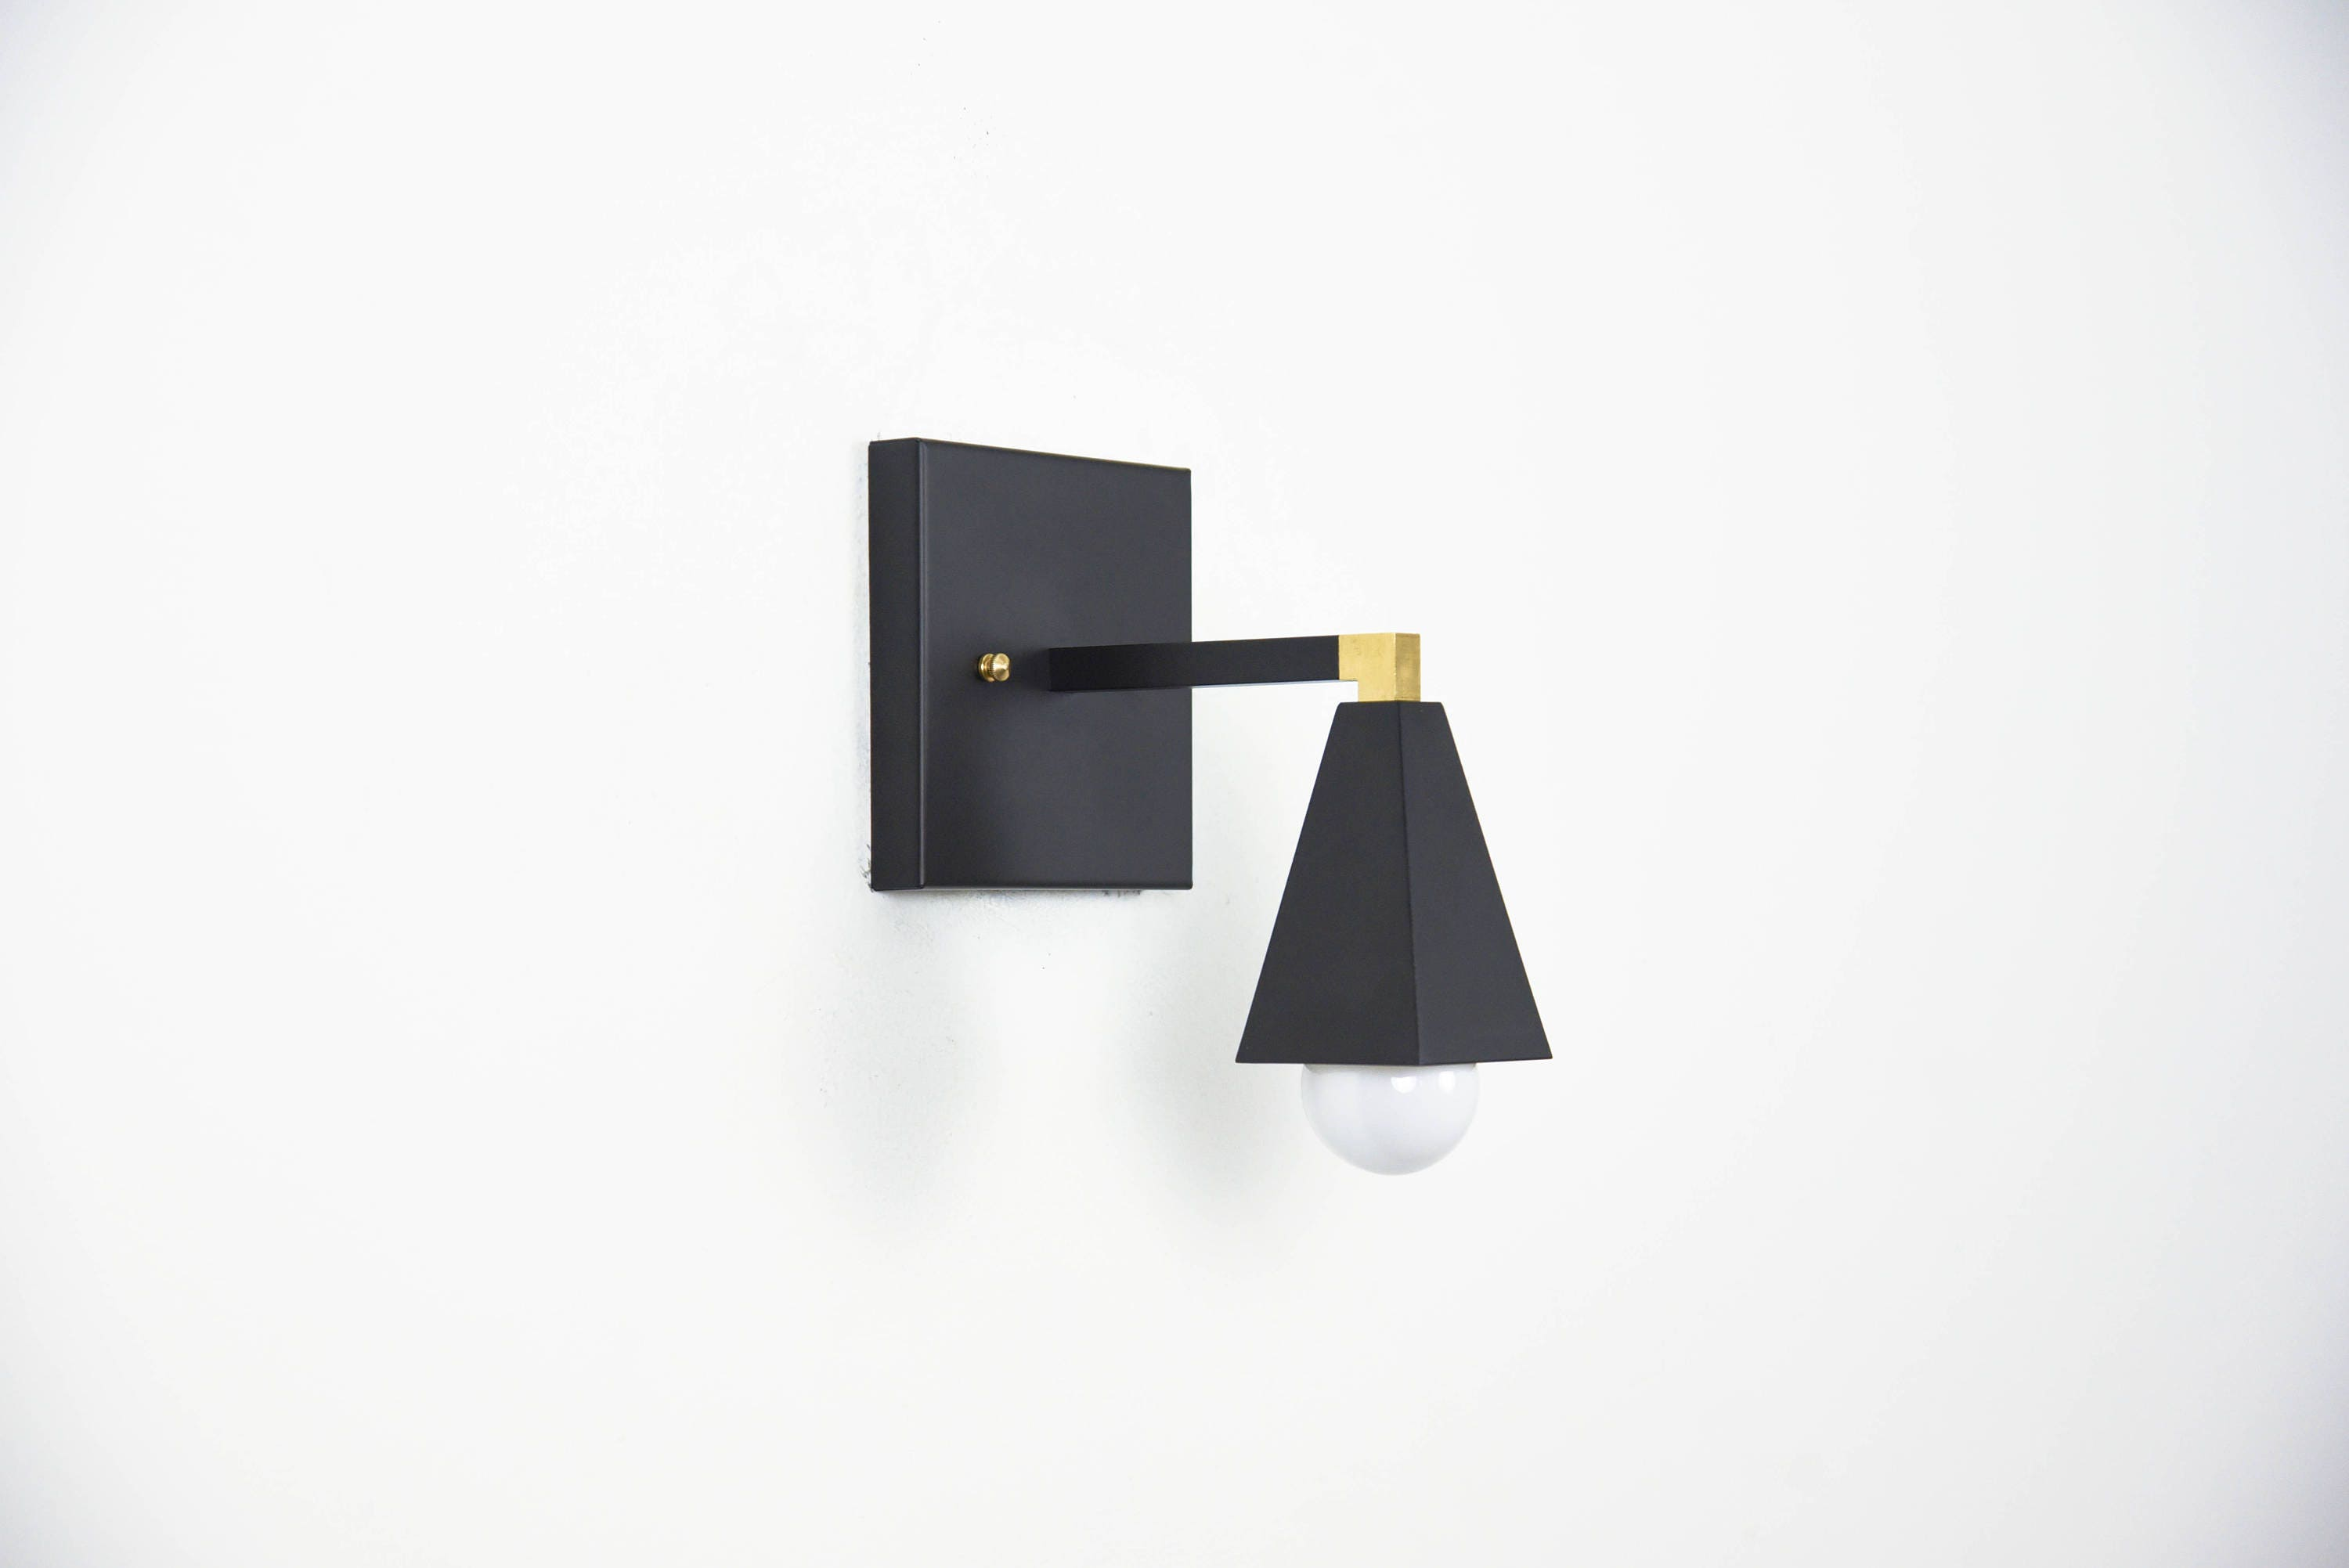 Wall sconce vanity matte black and raw brass gold mix modern wall sconce vanity matte black and raw brass gold mix modern square craftsman abstract mid century industrial art light bathroom ul listed arubaitofo Choice Image